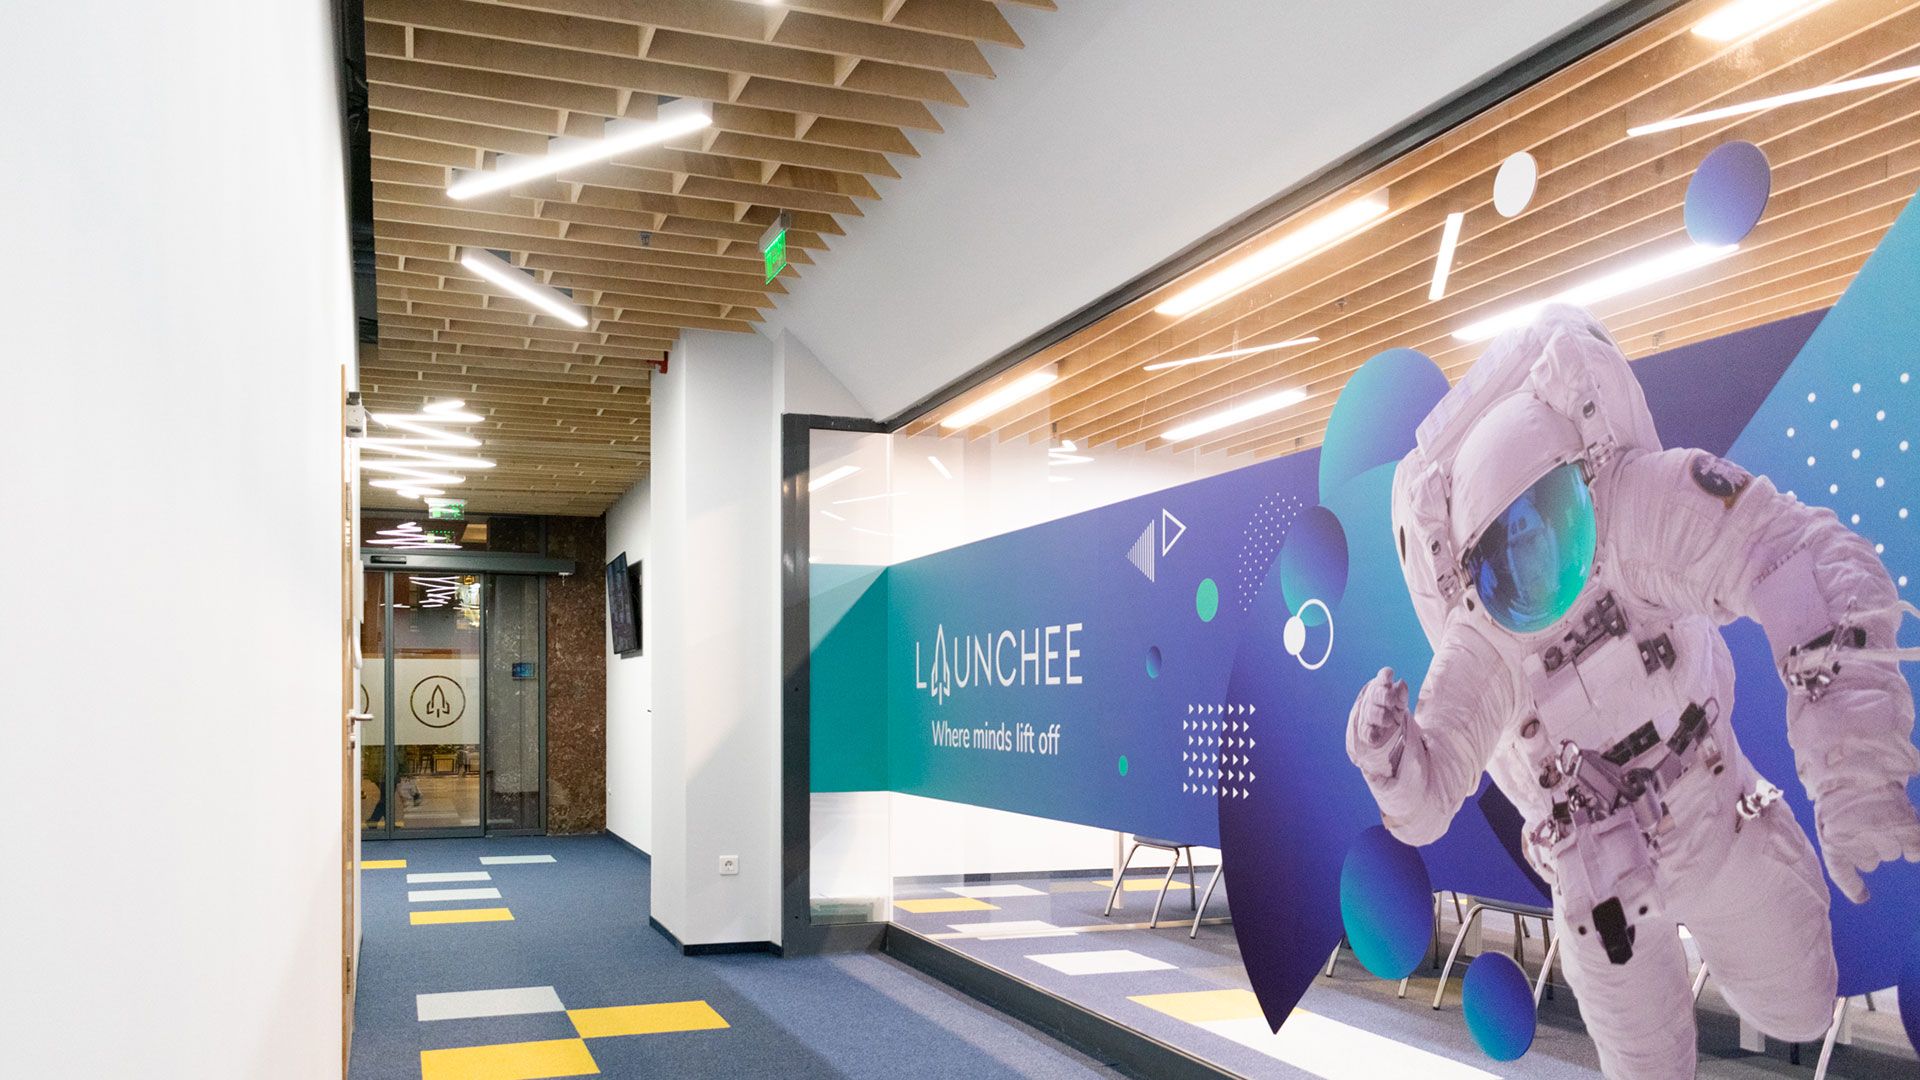 Launchee's space from inside